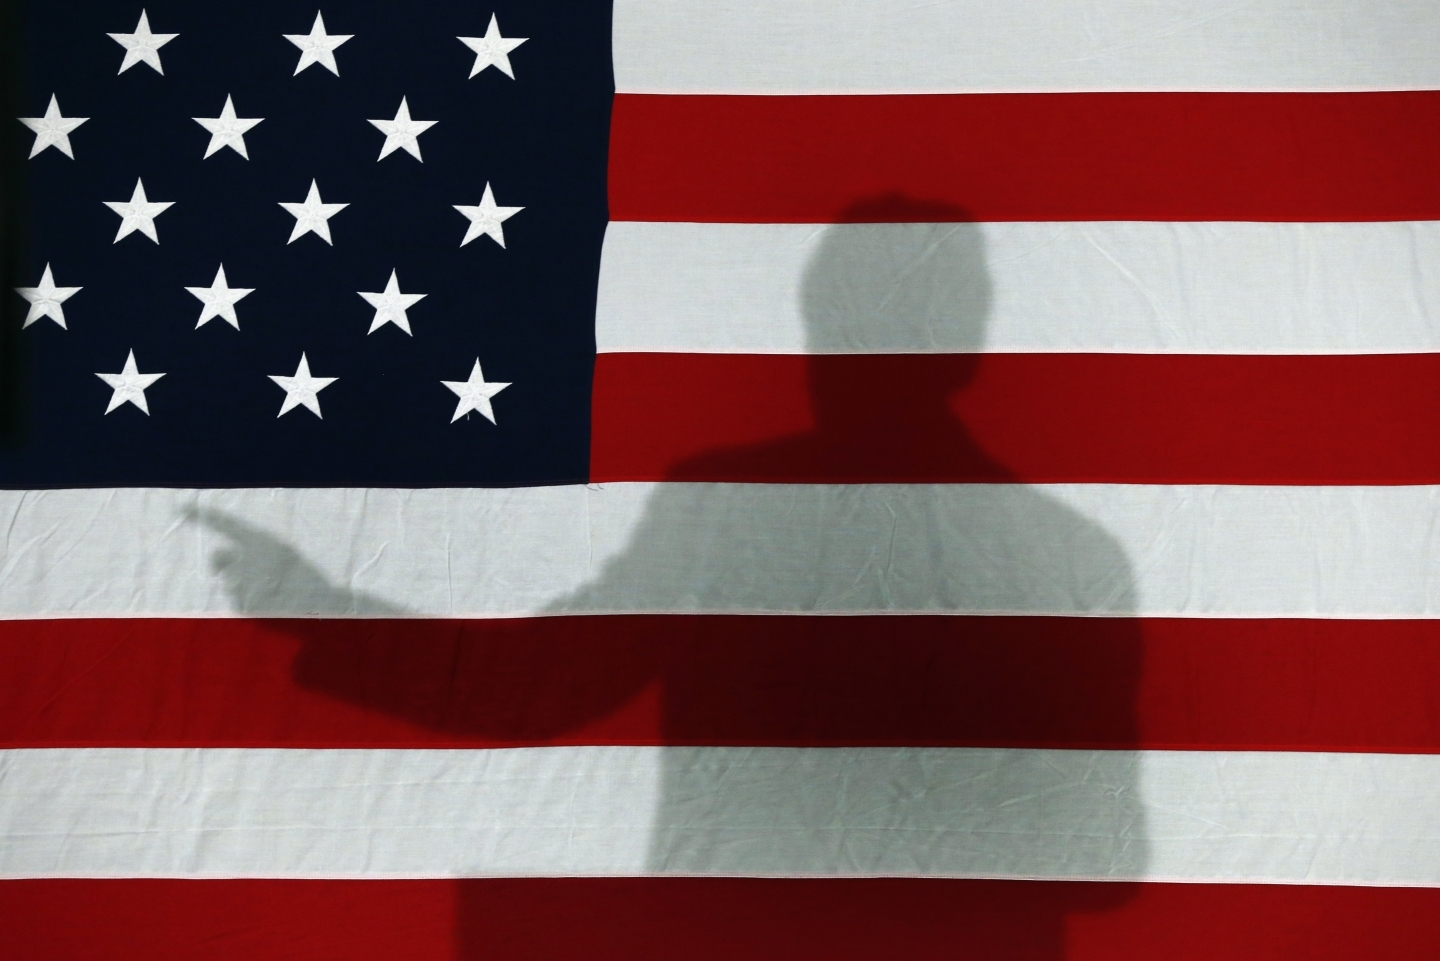 Former President Bill Clinton casts a shadow on an American flag during a 2016 campaign stop (AP Photo/Paul Sancya)